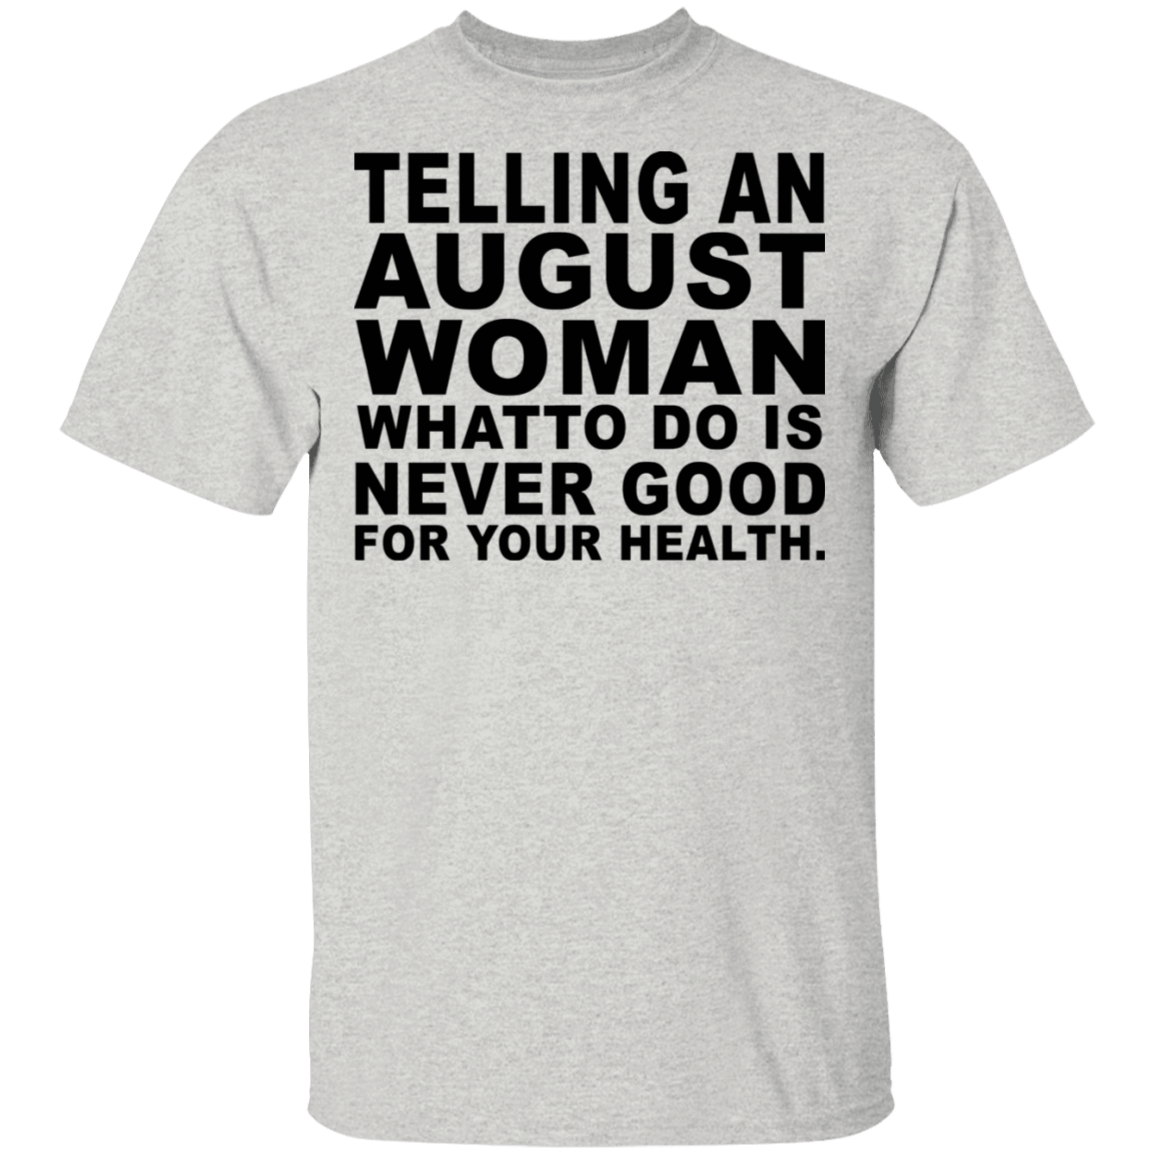 Telling An August Woman What To Do Is Never Good T-Shirts, Hoodies, Tank 22-2475-79463211-12568 - Tee Ript